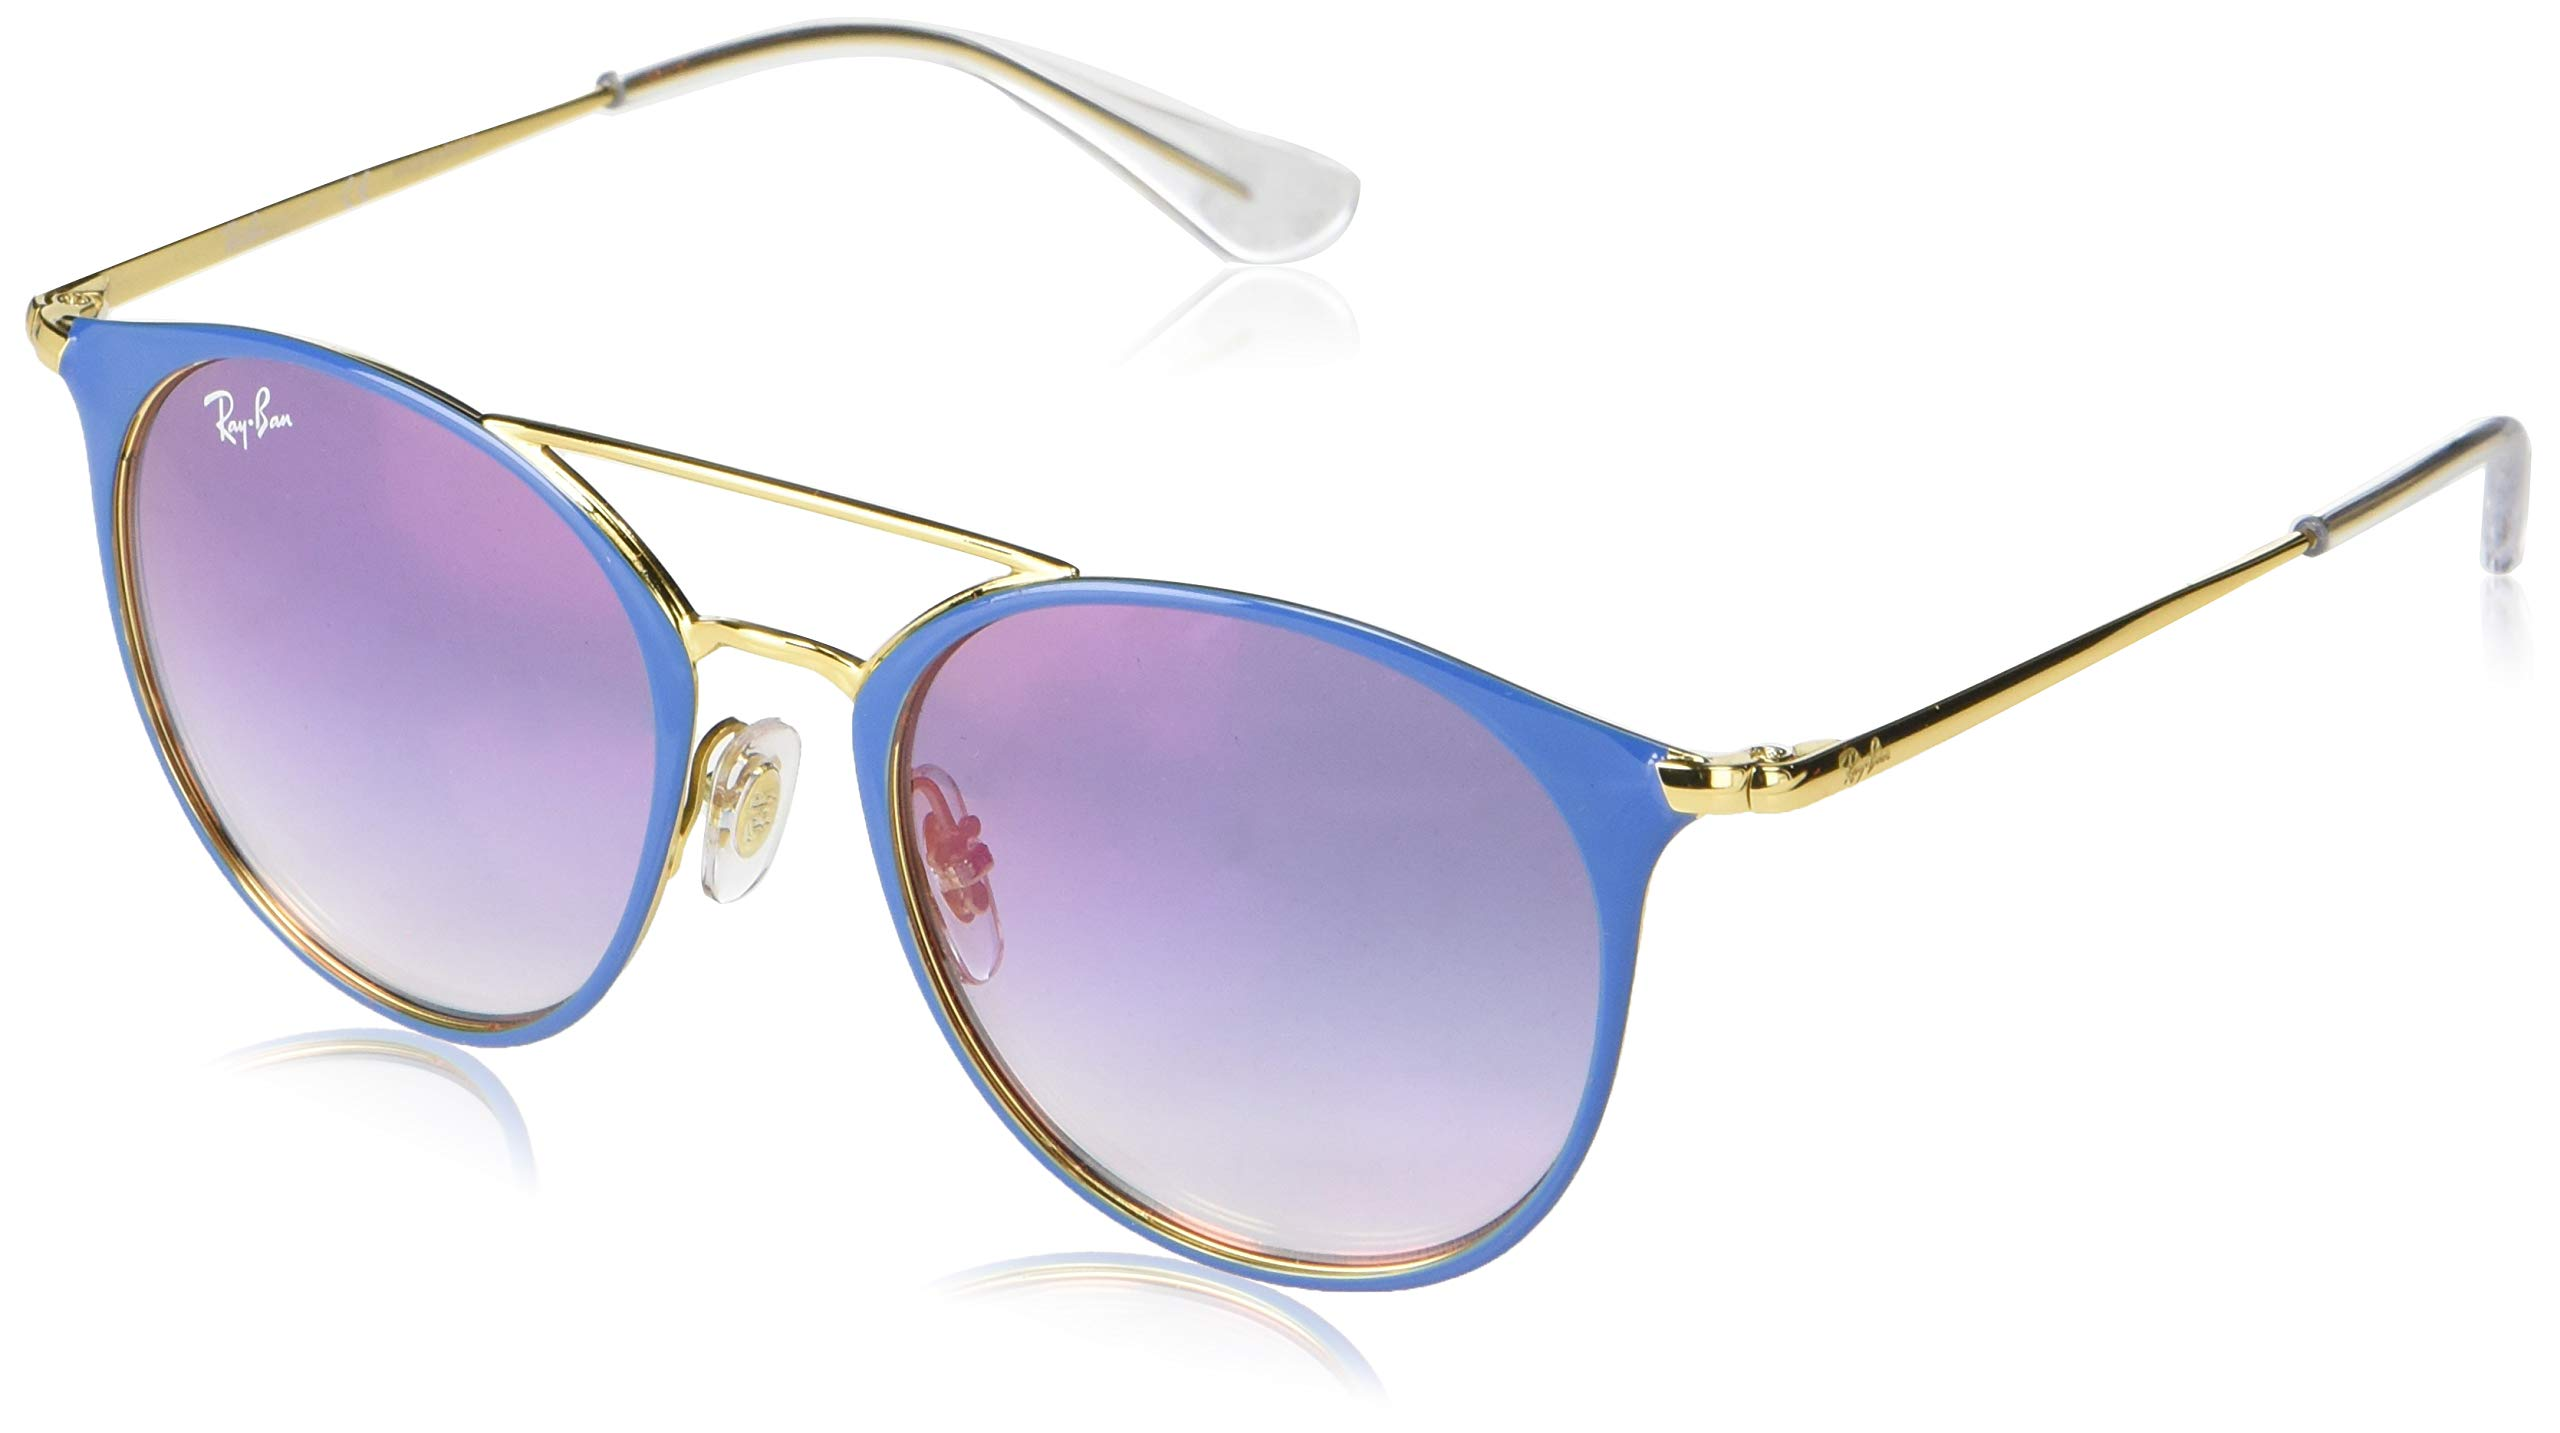 Ray-Ban Junior RJ9545S Round Kids Sunglasses, Light Blue on Gold/Blue Red Gradient Mirror, 47 mm